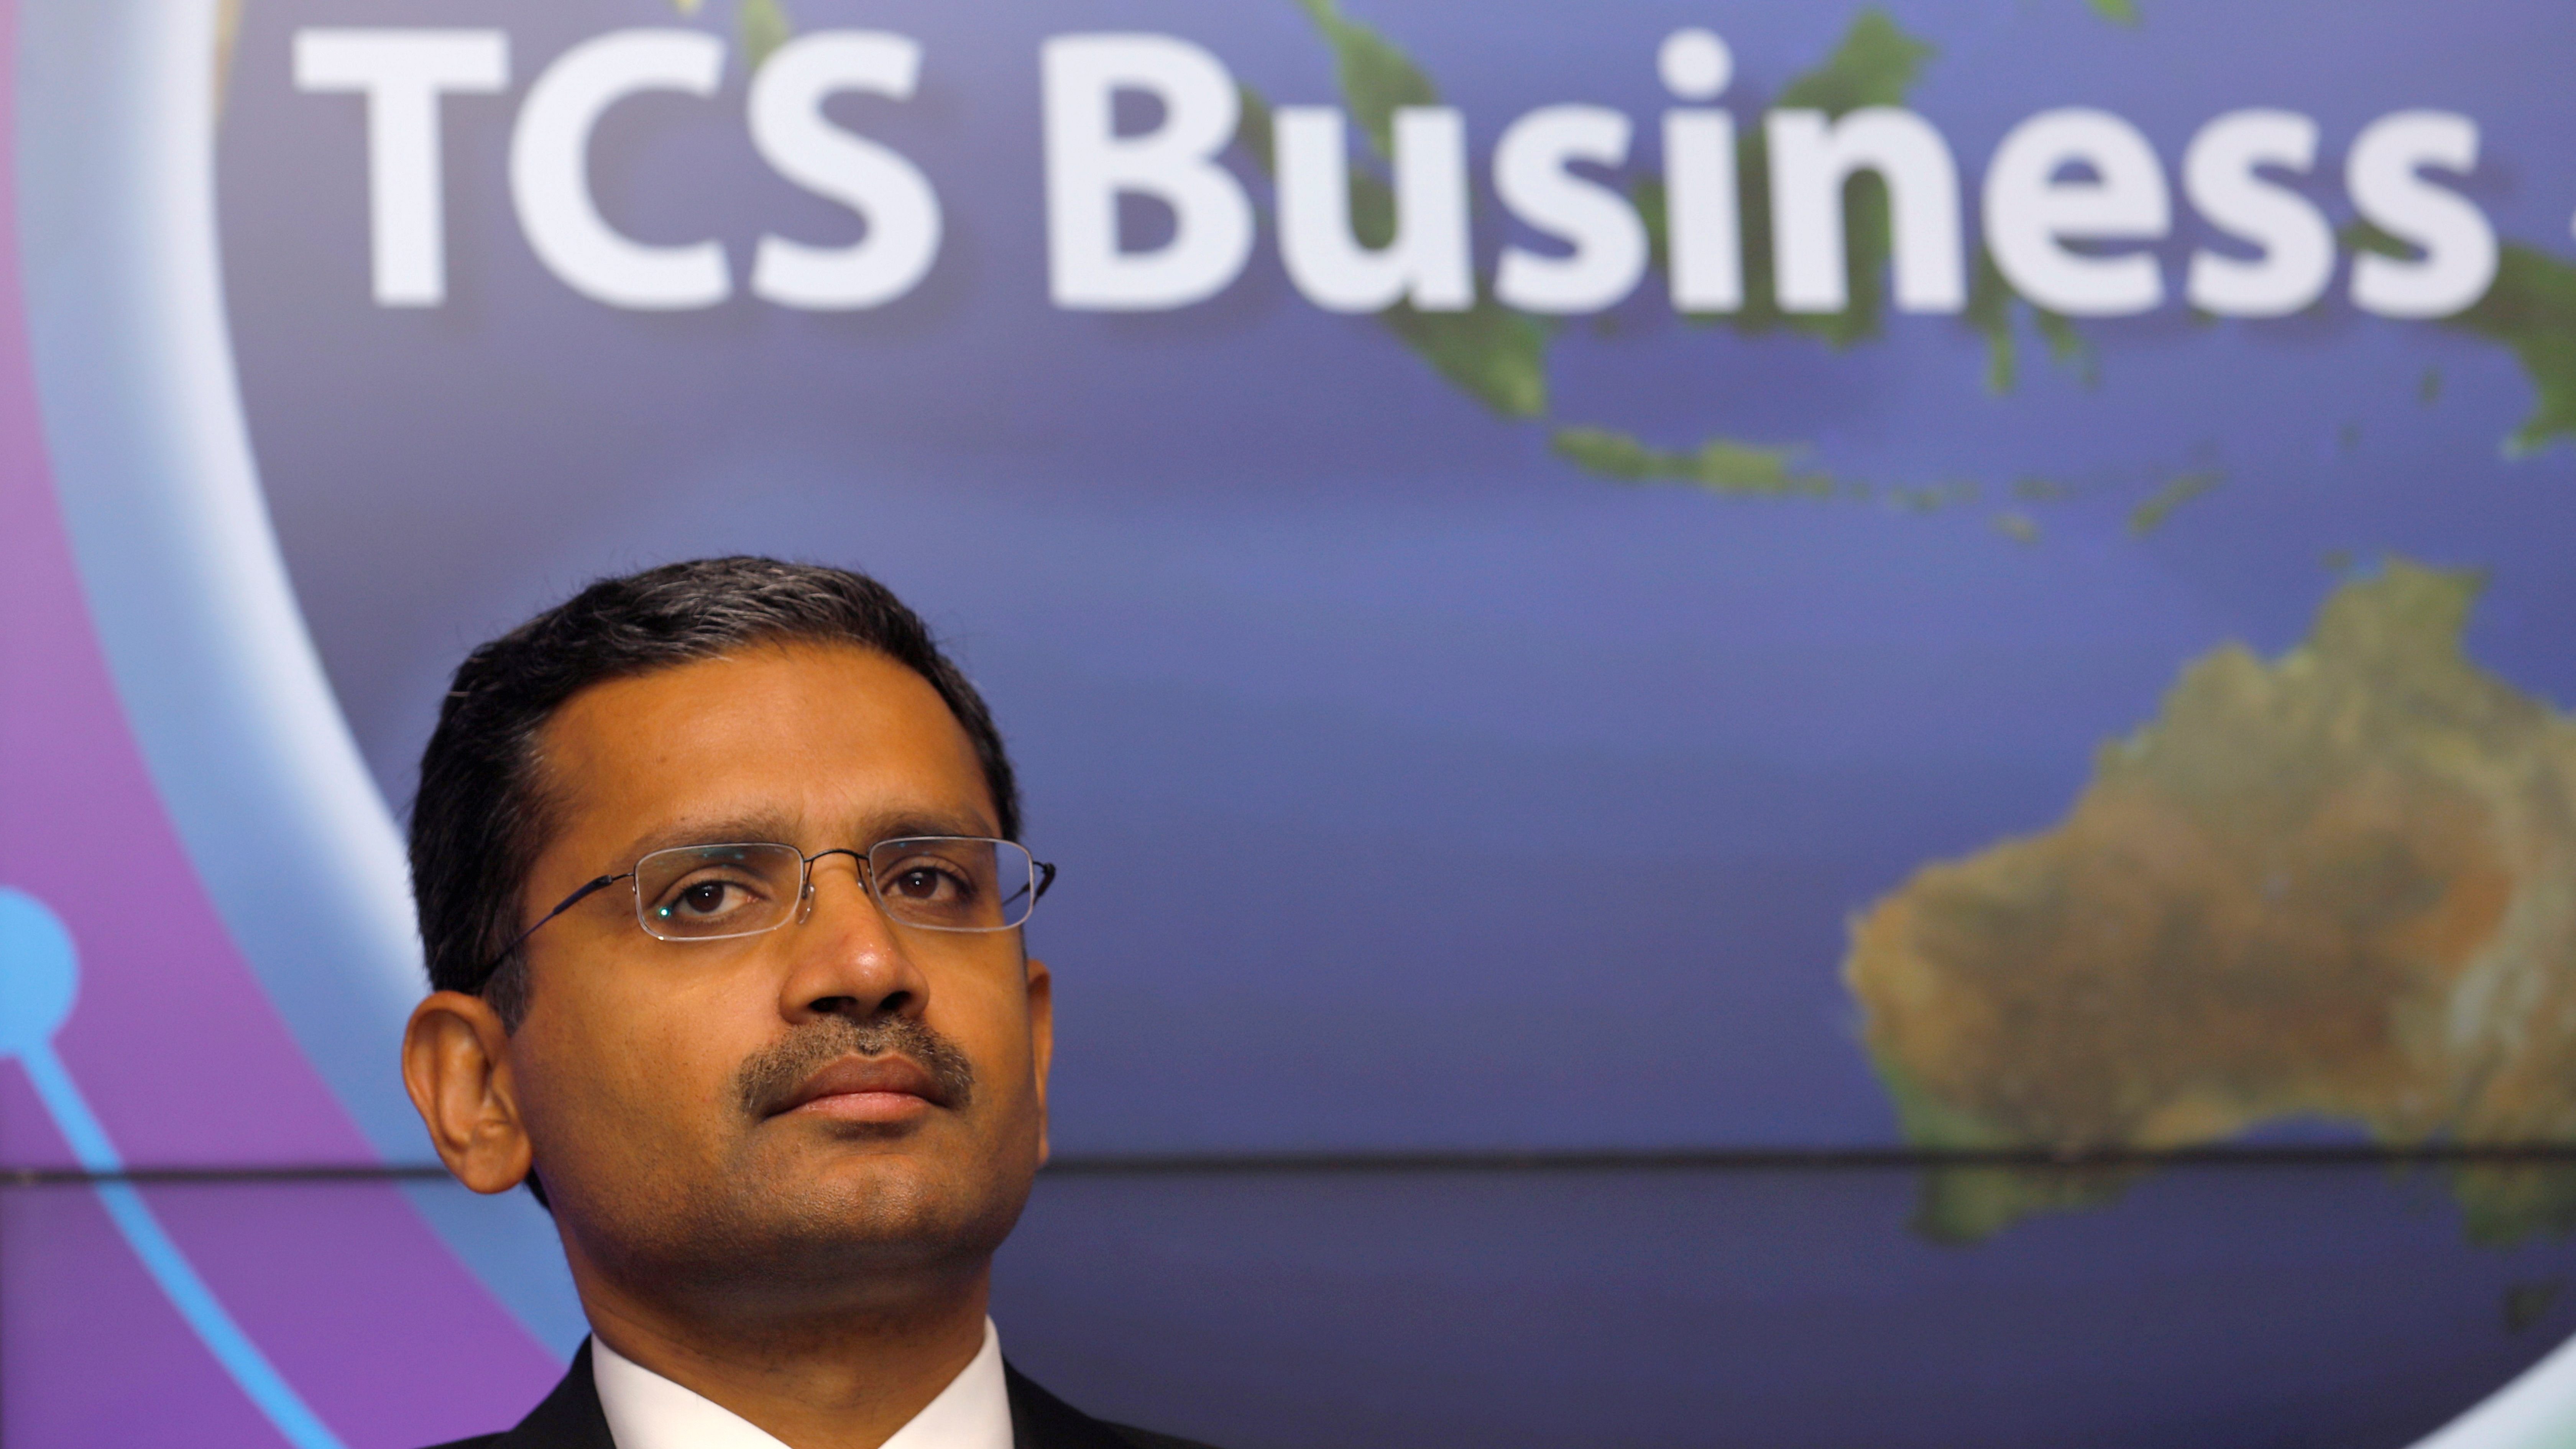 Tata Consultancy Services (TCS) Chief Executive Officer Rajesh Gopinathan